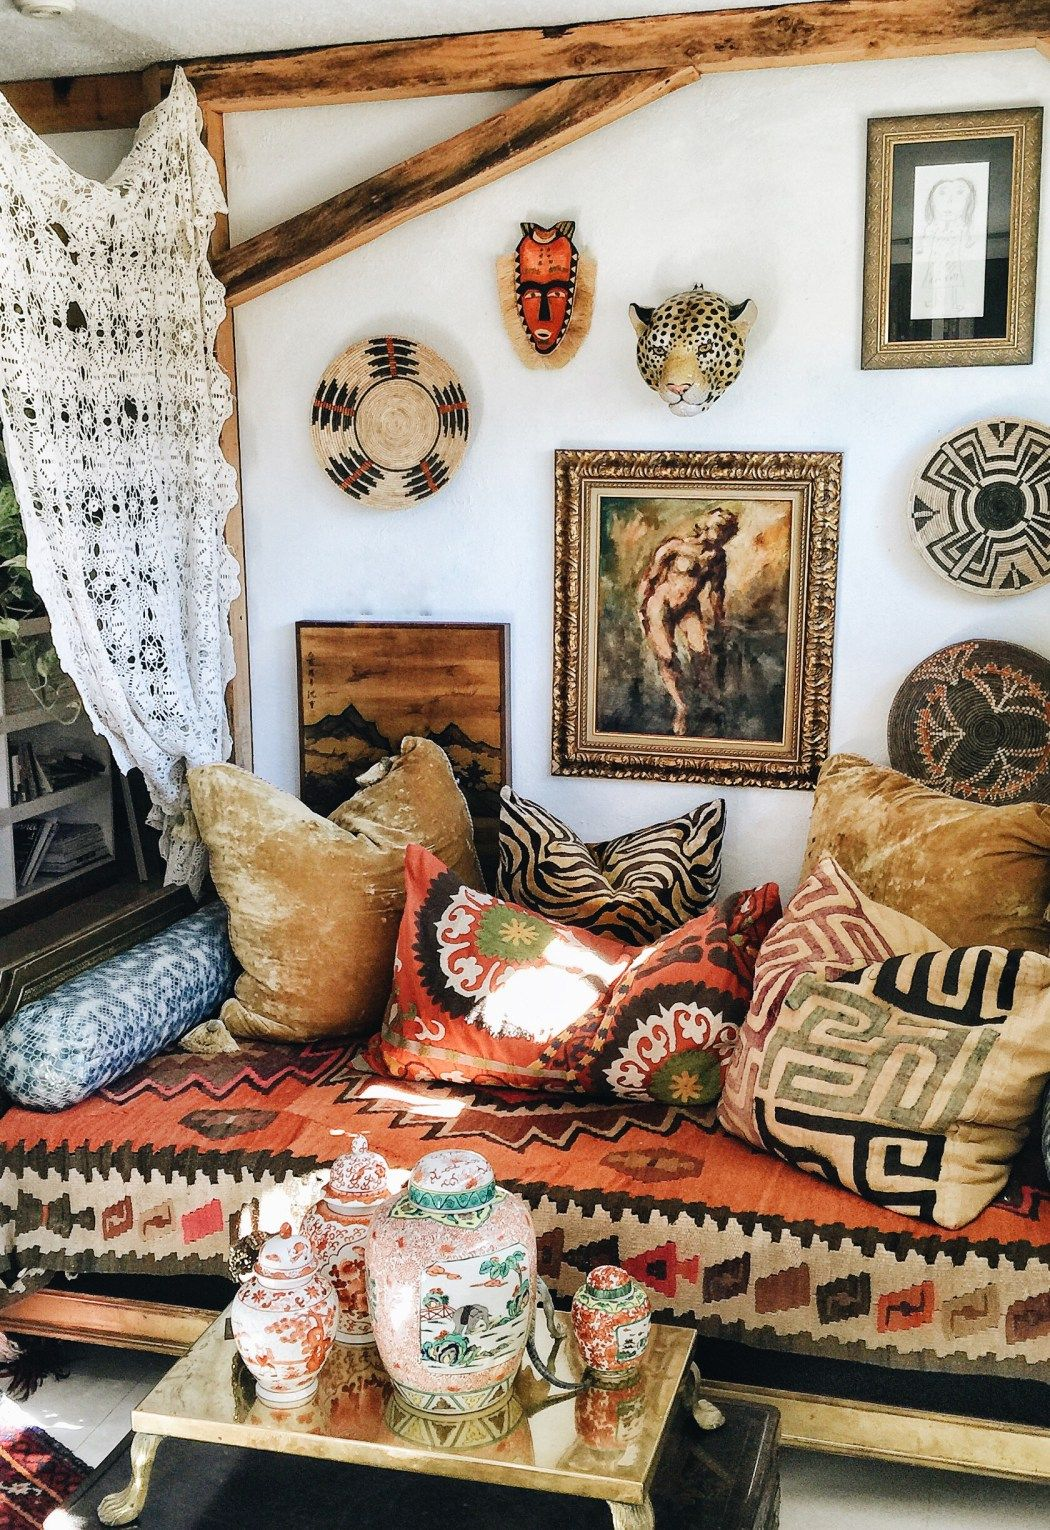 Bohemian Life Eclectic Space Boho Design Decor Gypsy Inspired Nontraditional Living Elements Of Bohemia